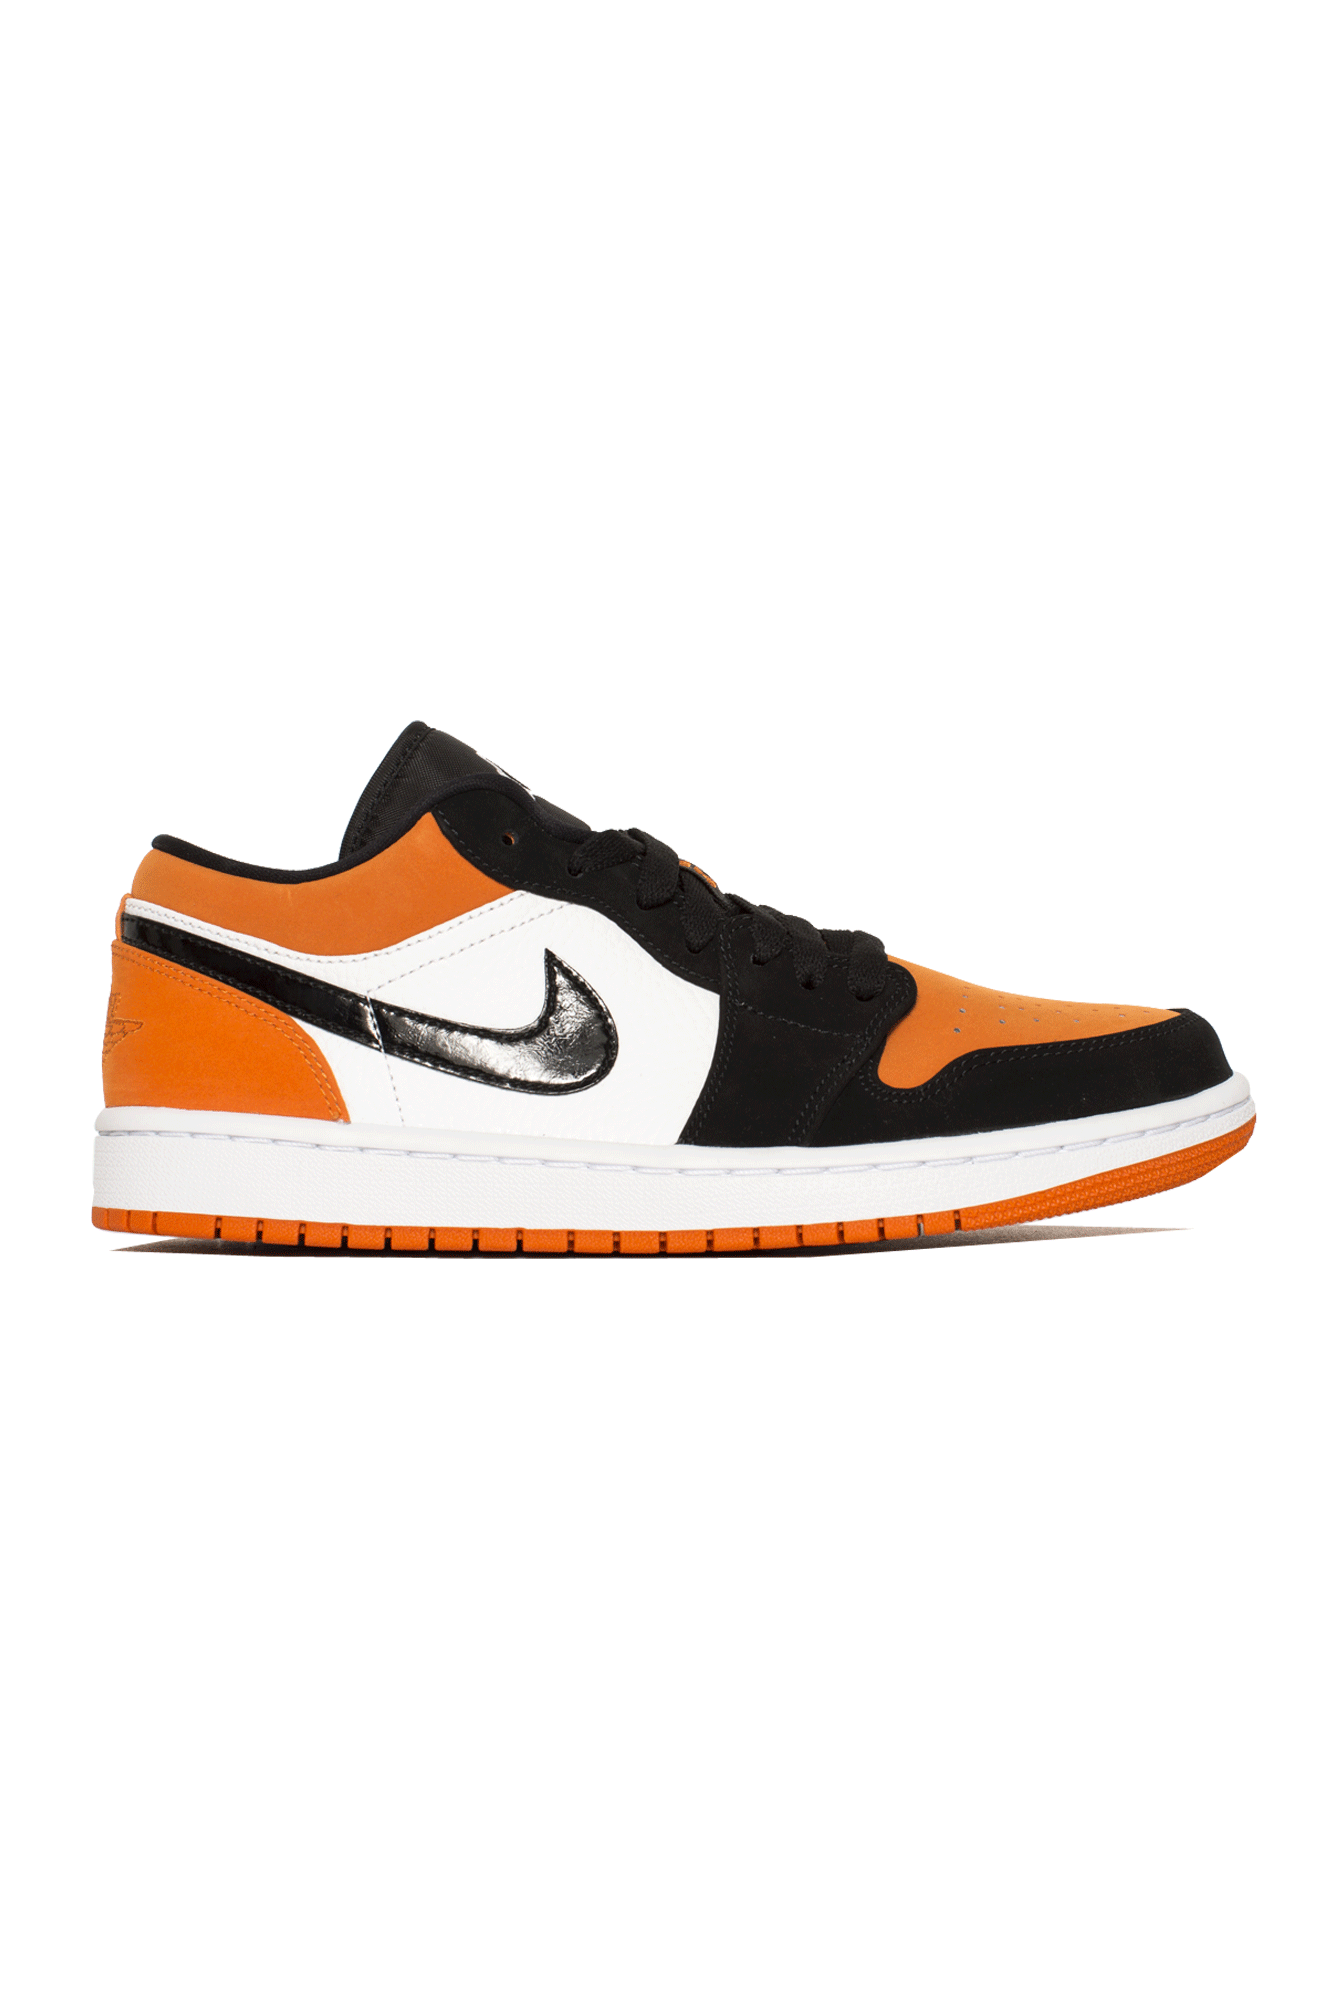 Air Jordan Sneakers 1 Low Orange 553558-#000#128#8 - One Block Down